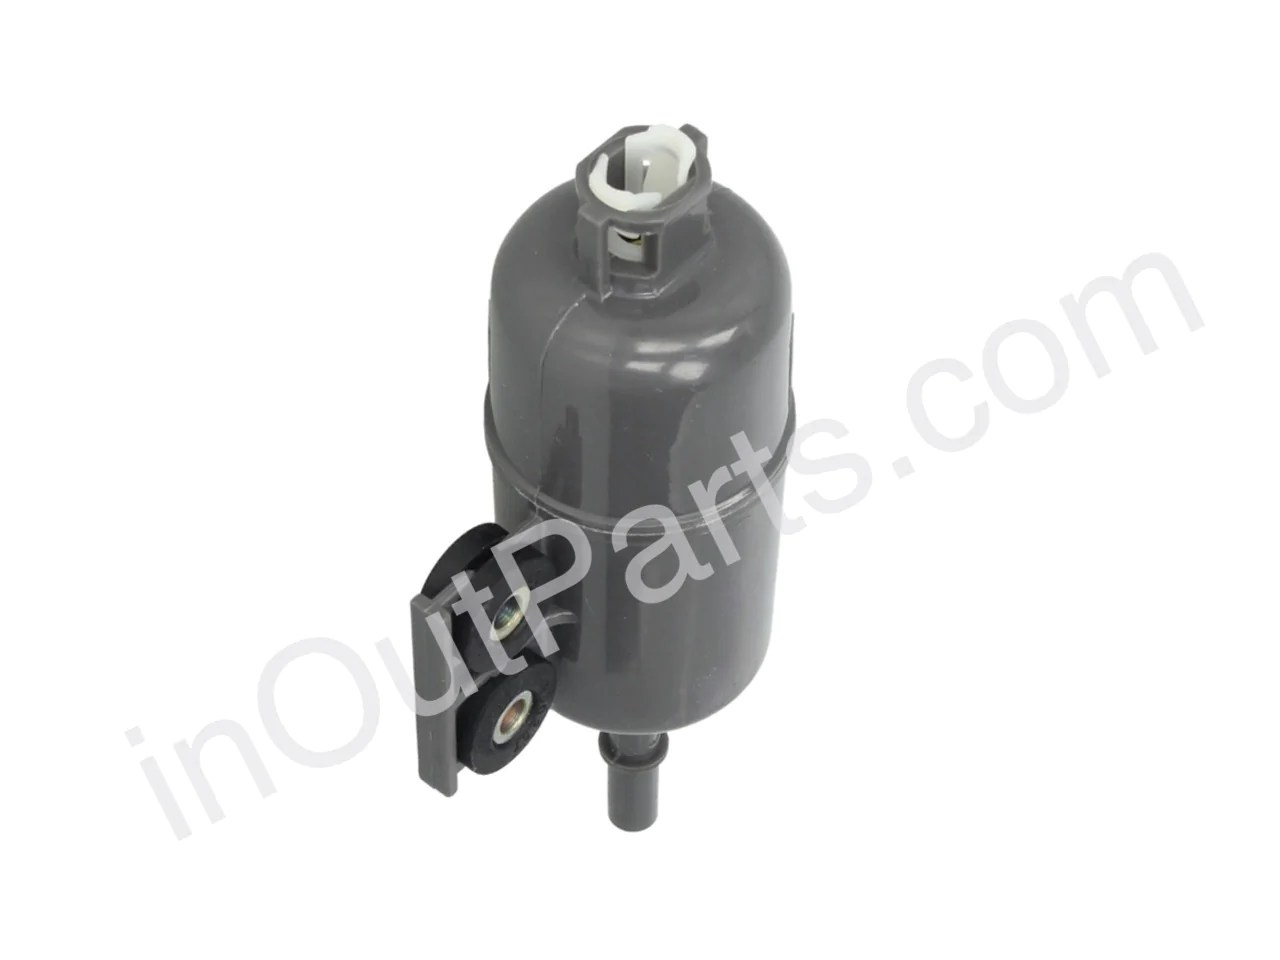 small resolution of  fuel filter fits honda accord cf 1 6 cg2 ch7 cl2 1997 1998